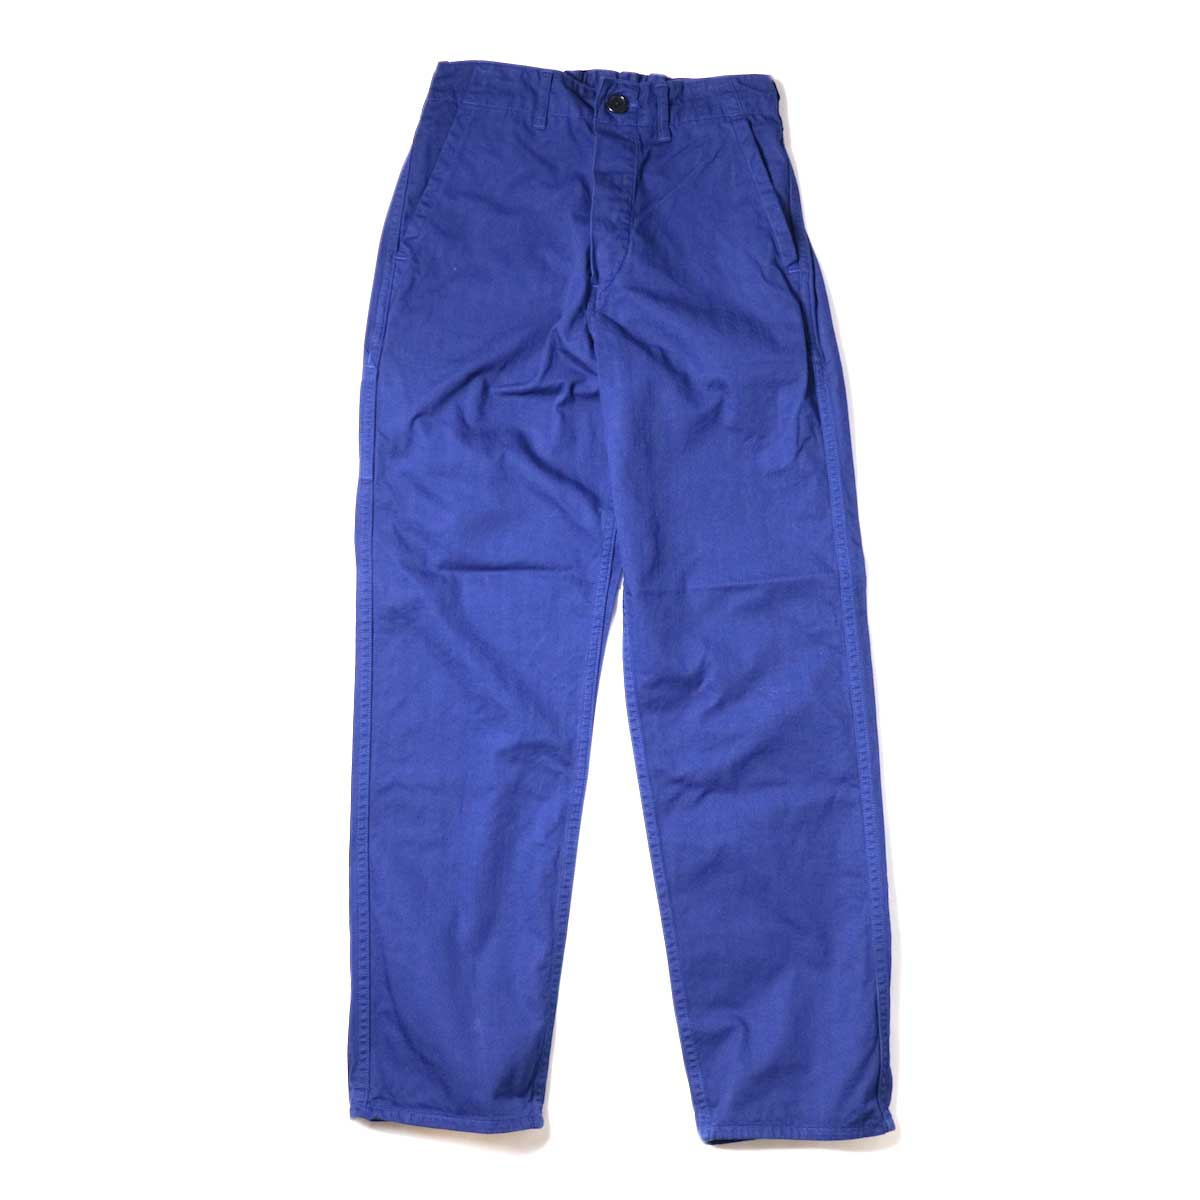 orSlow / French Work Pants (Blue)